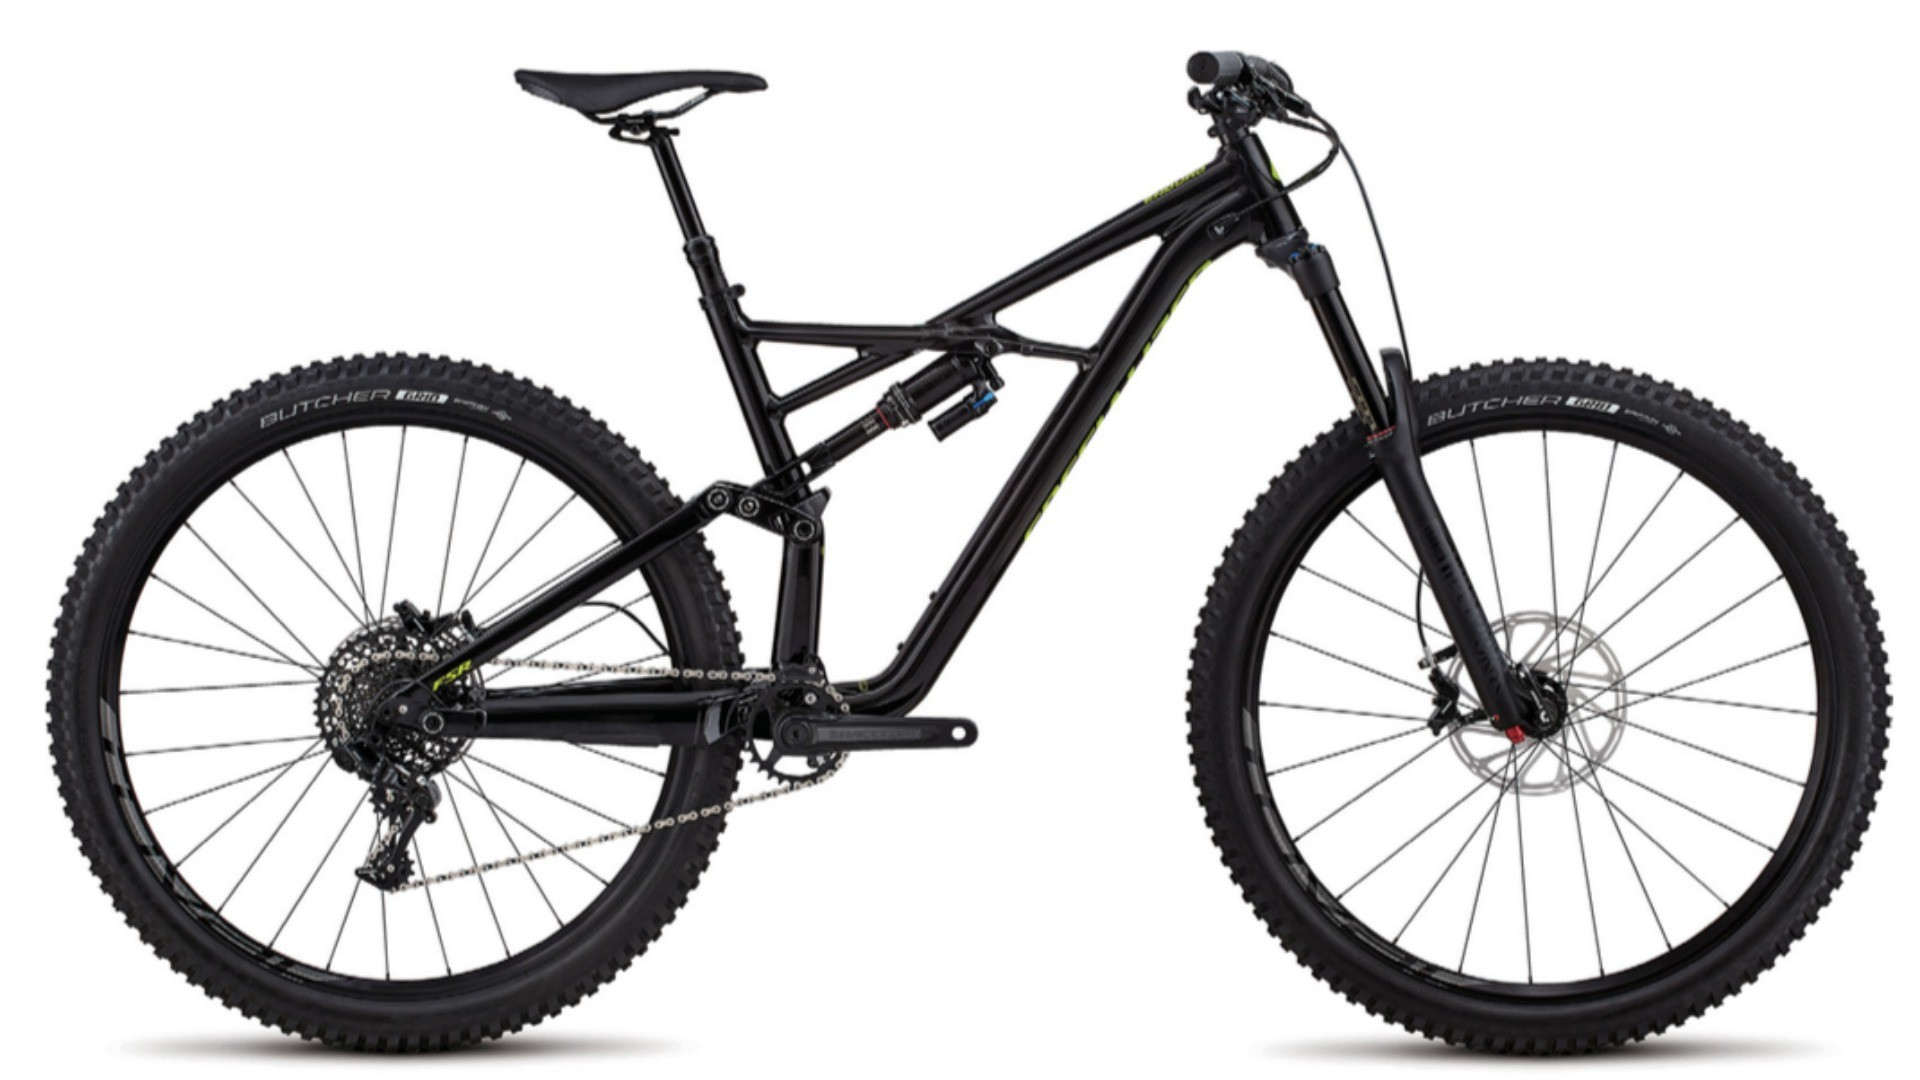 The Comp 29er version is an alloy-framed entry-level model for the range